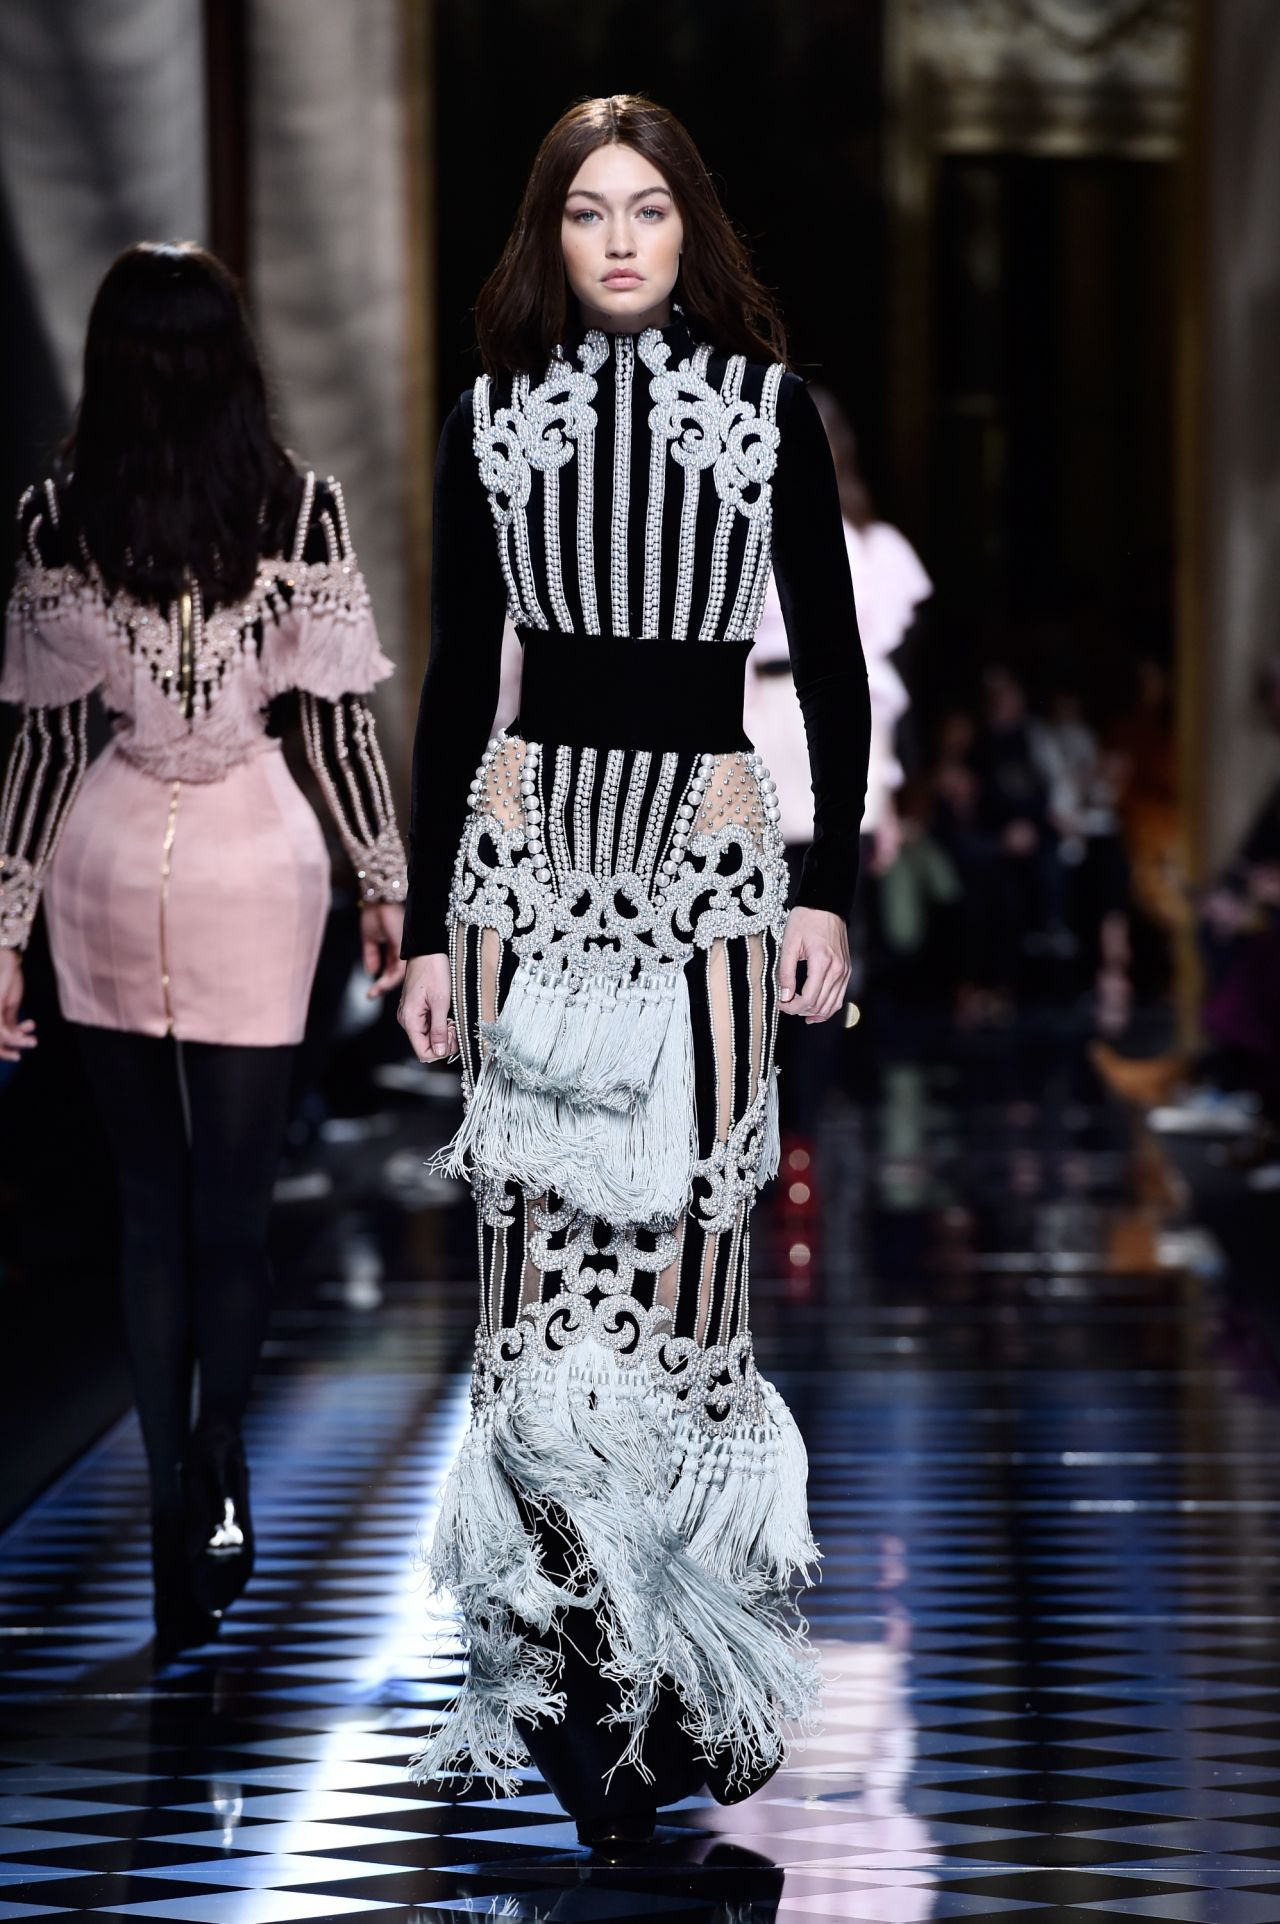 Fashion Show Coloring Pages For Adults: Paris Fashion Week 3/3